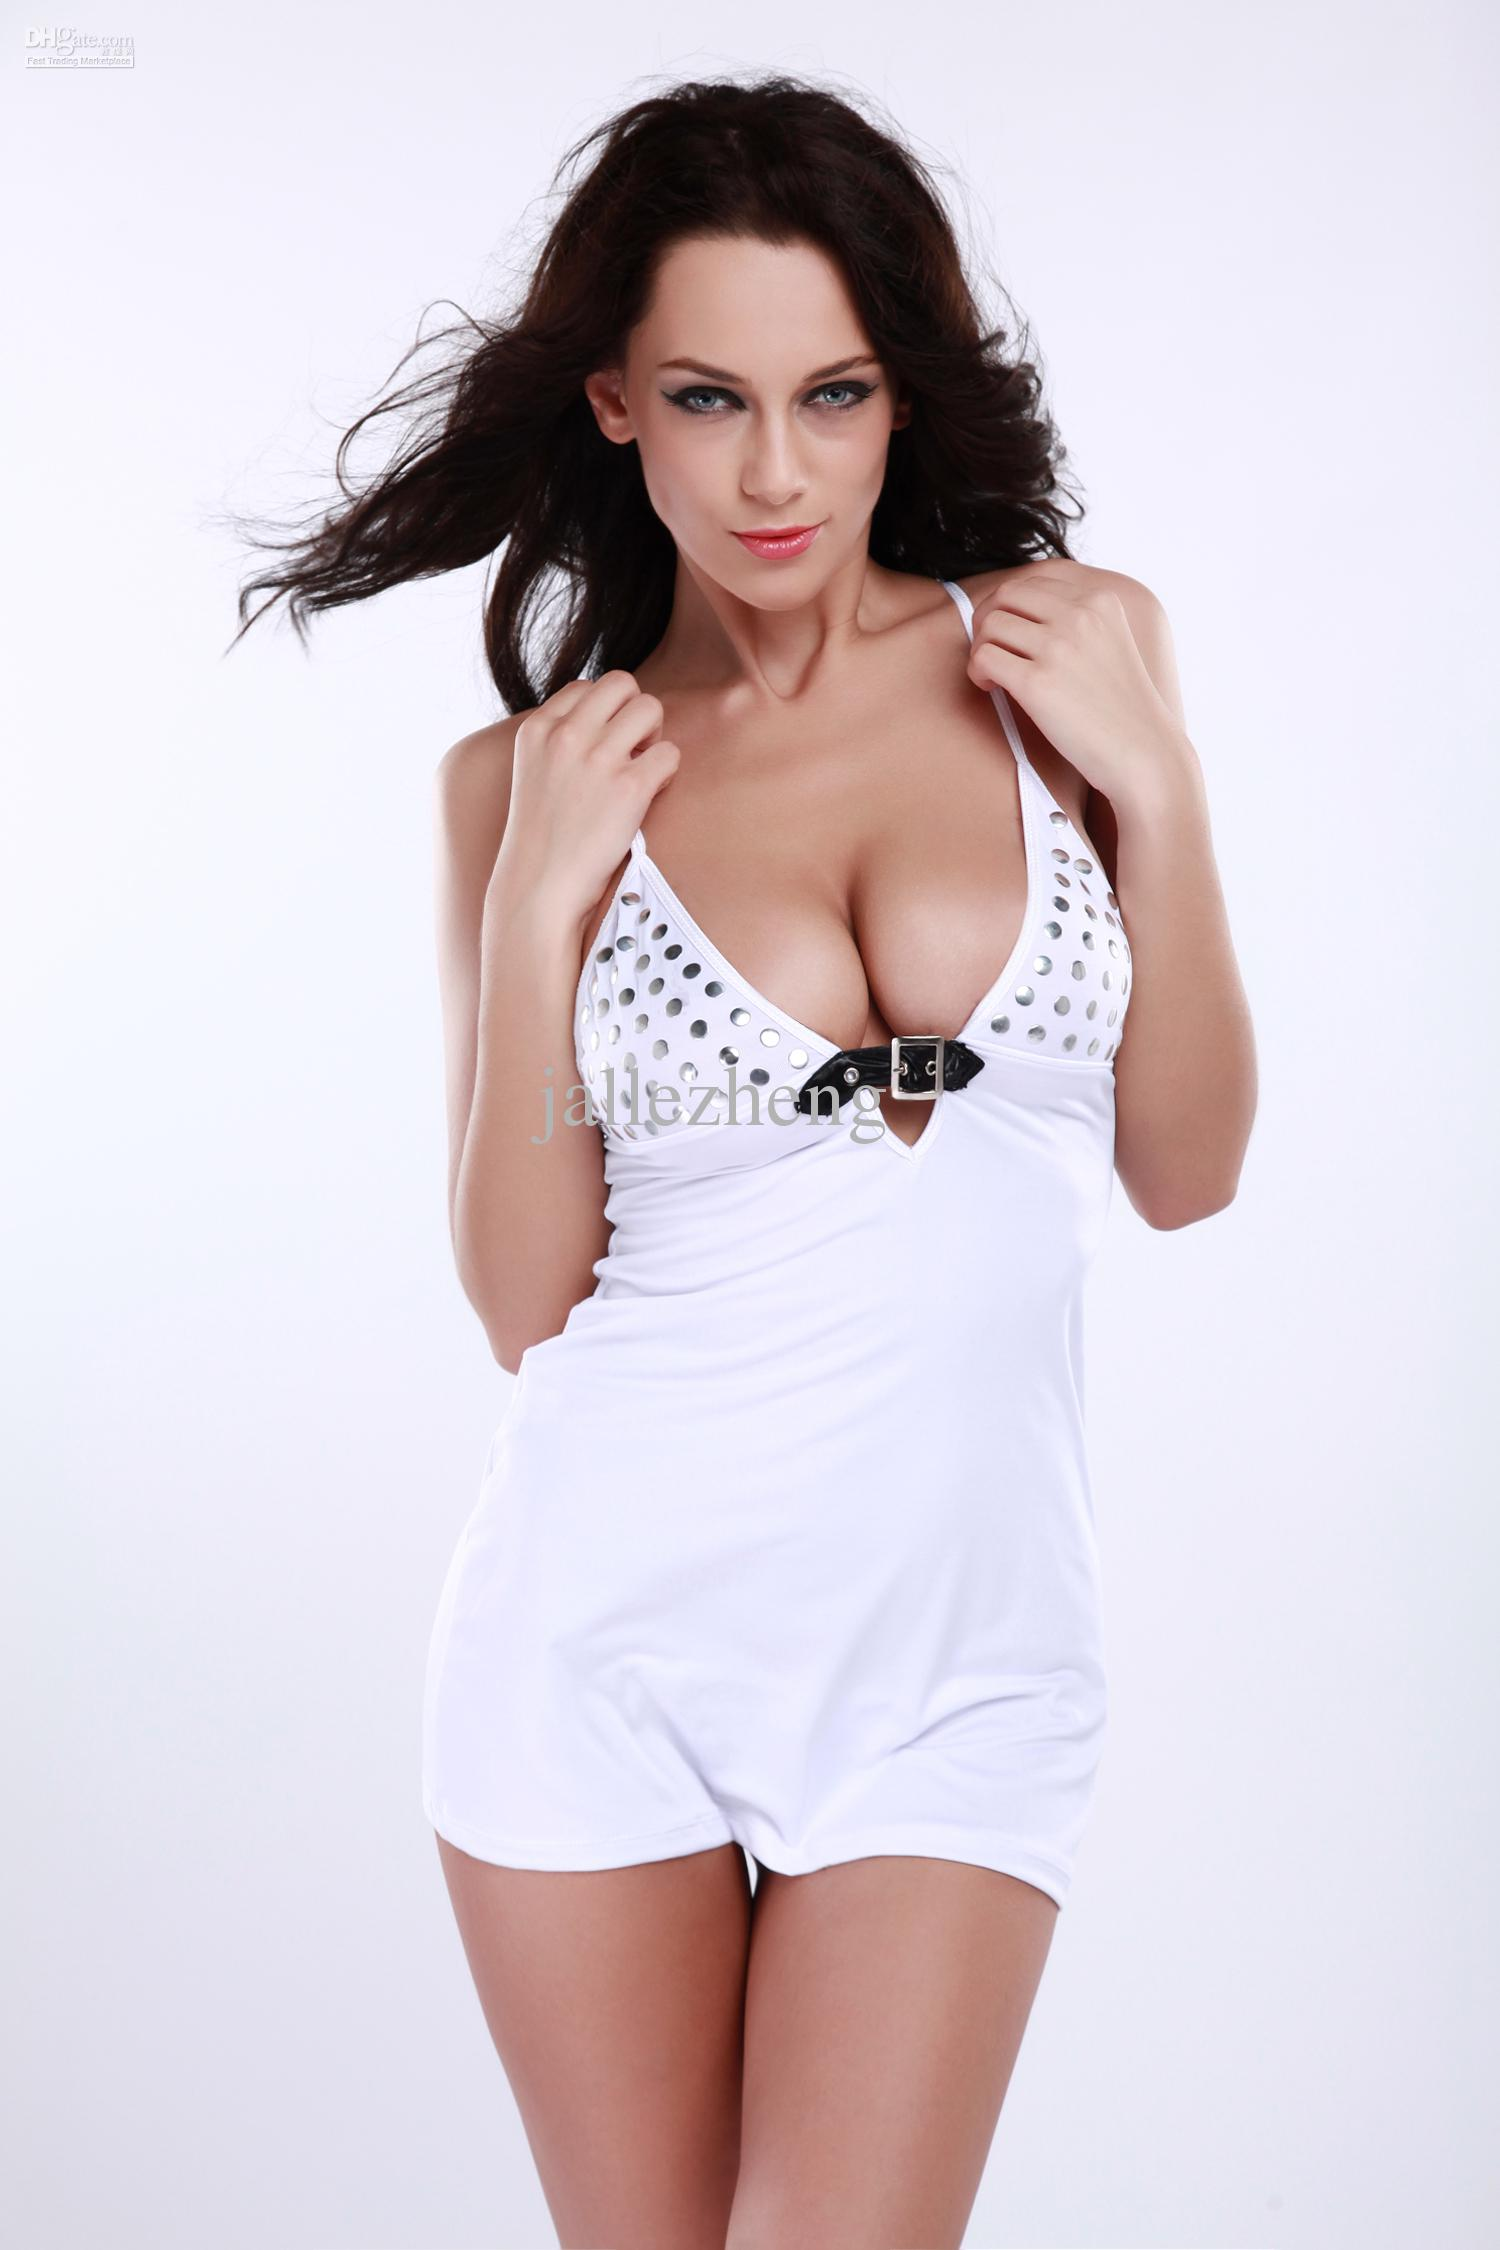 sexy girl pussey dating